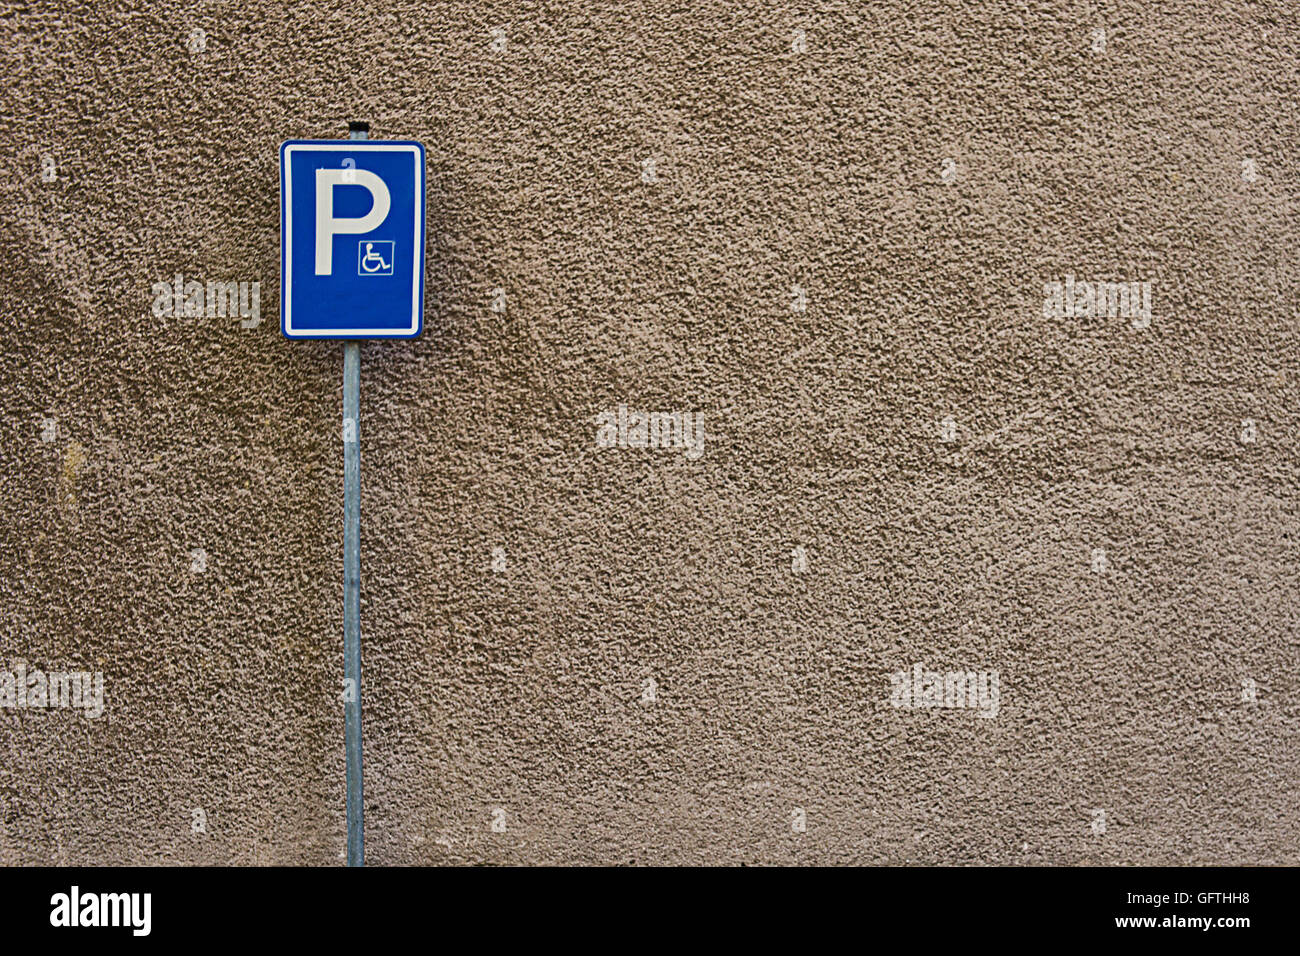 parking sign reserved for disabled - Stock Image